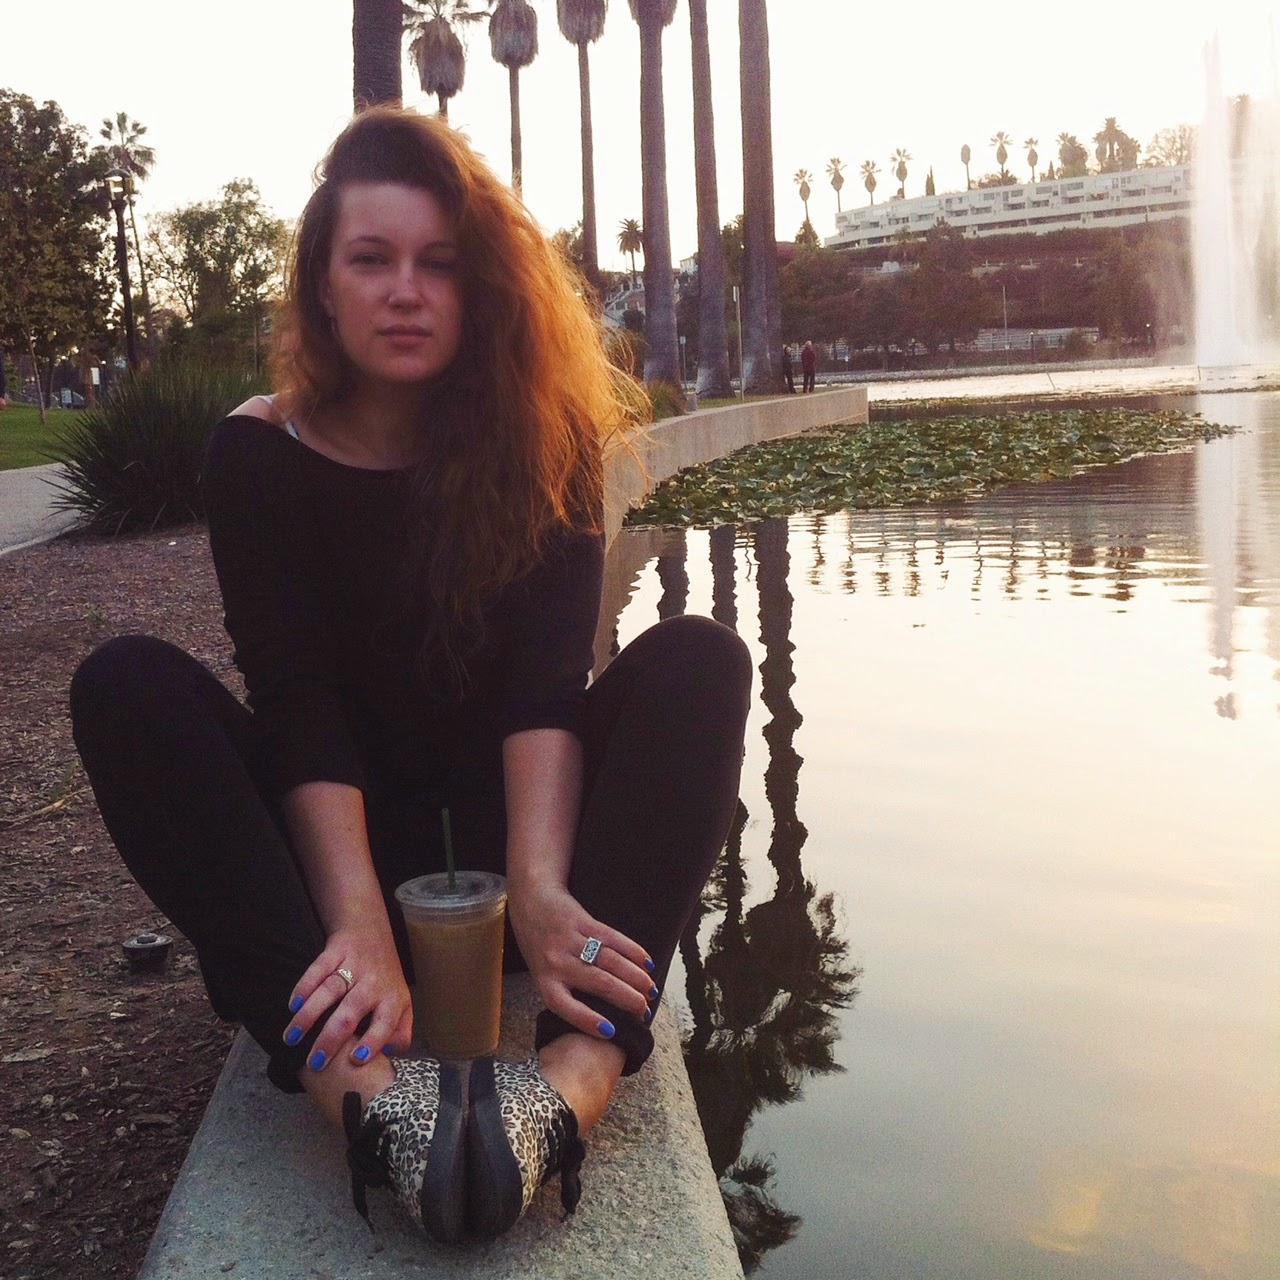 los angeles style blog, all black outfit, leopard print sneakers, echo park lake, simple living lifestyle blog, instagram blogging tips